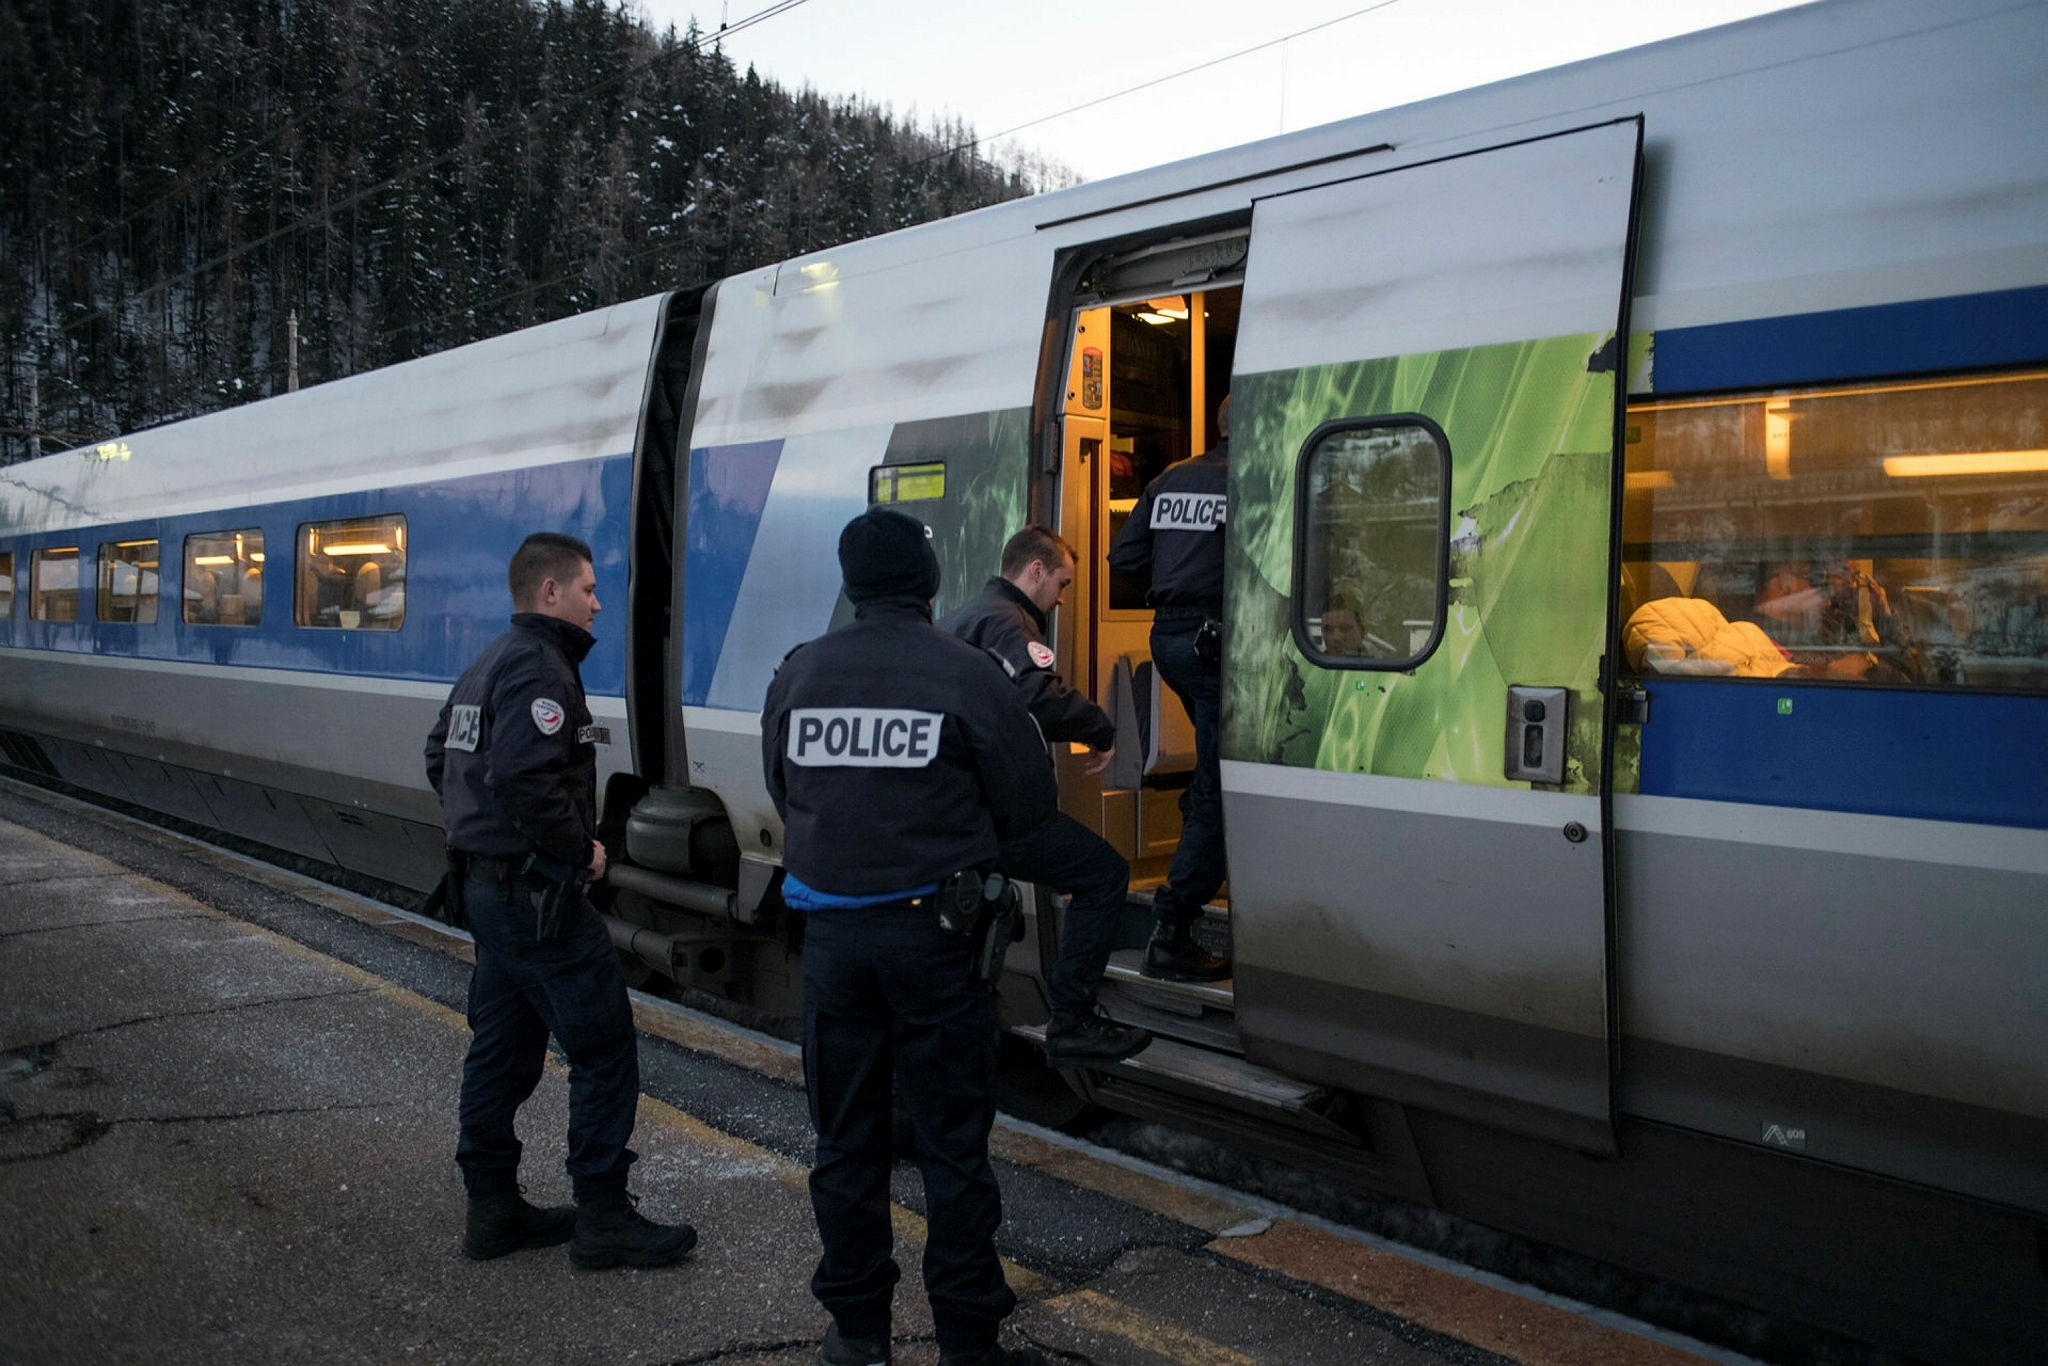 French police officers board a TGV train bound from Milan to Paris to inspect passengers and look for illegal immigrants, Jan. 12.